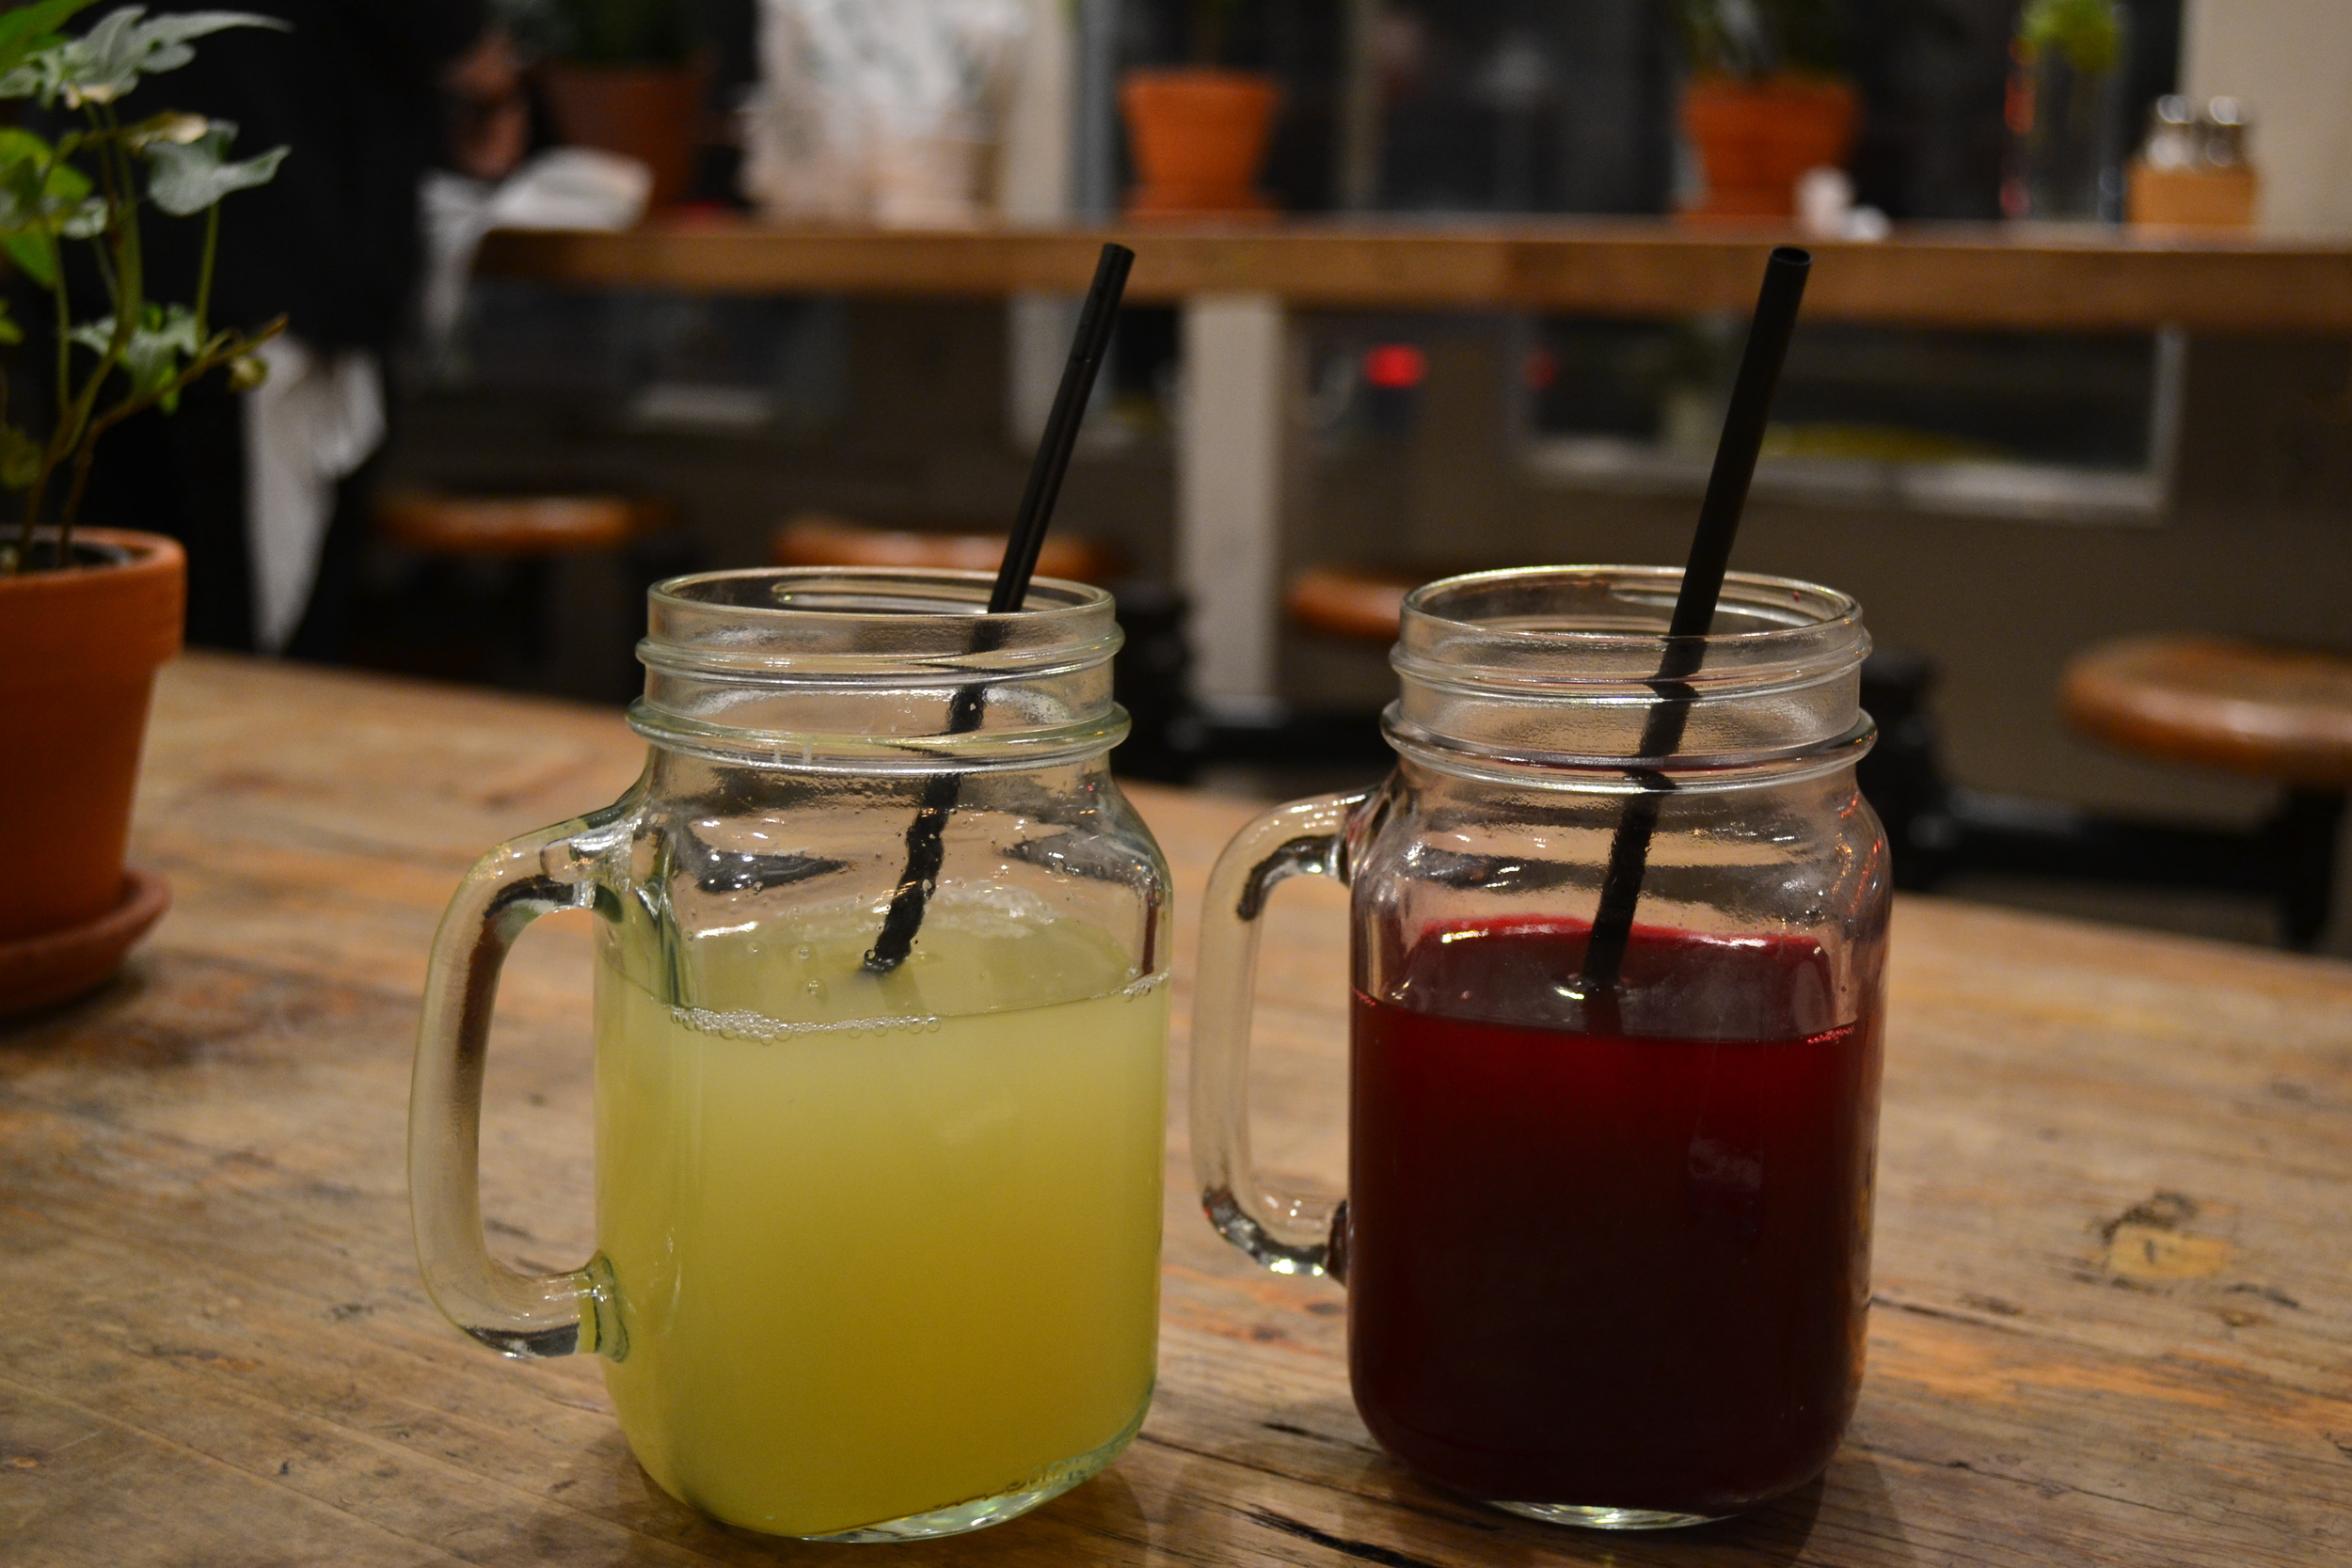 Red and Yellow simple juices at The Butcher's Daughter